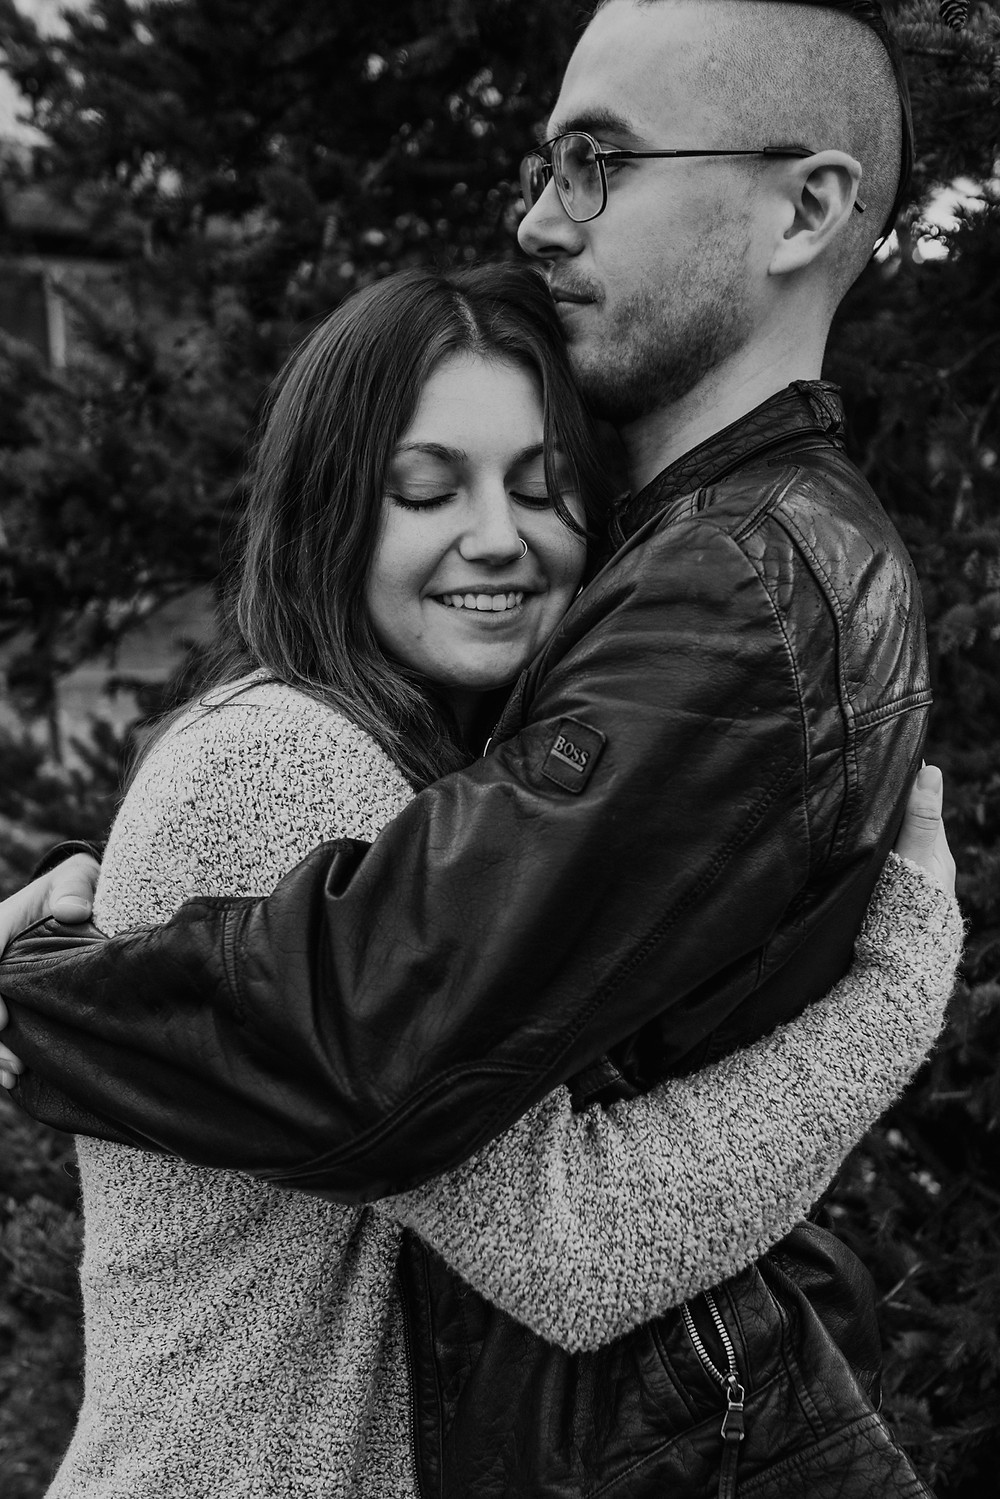 Metro Detroit engagement session with couple hugging. Photographed by Nicole Leanne Photography.